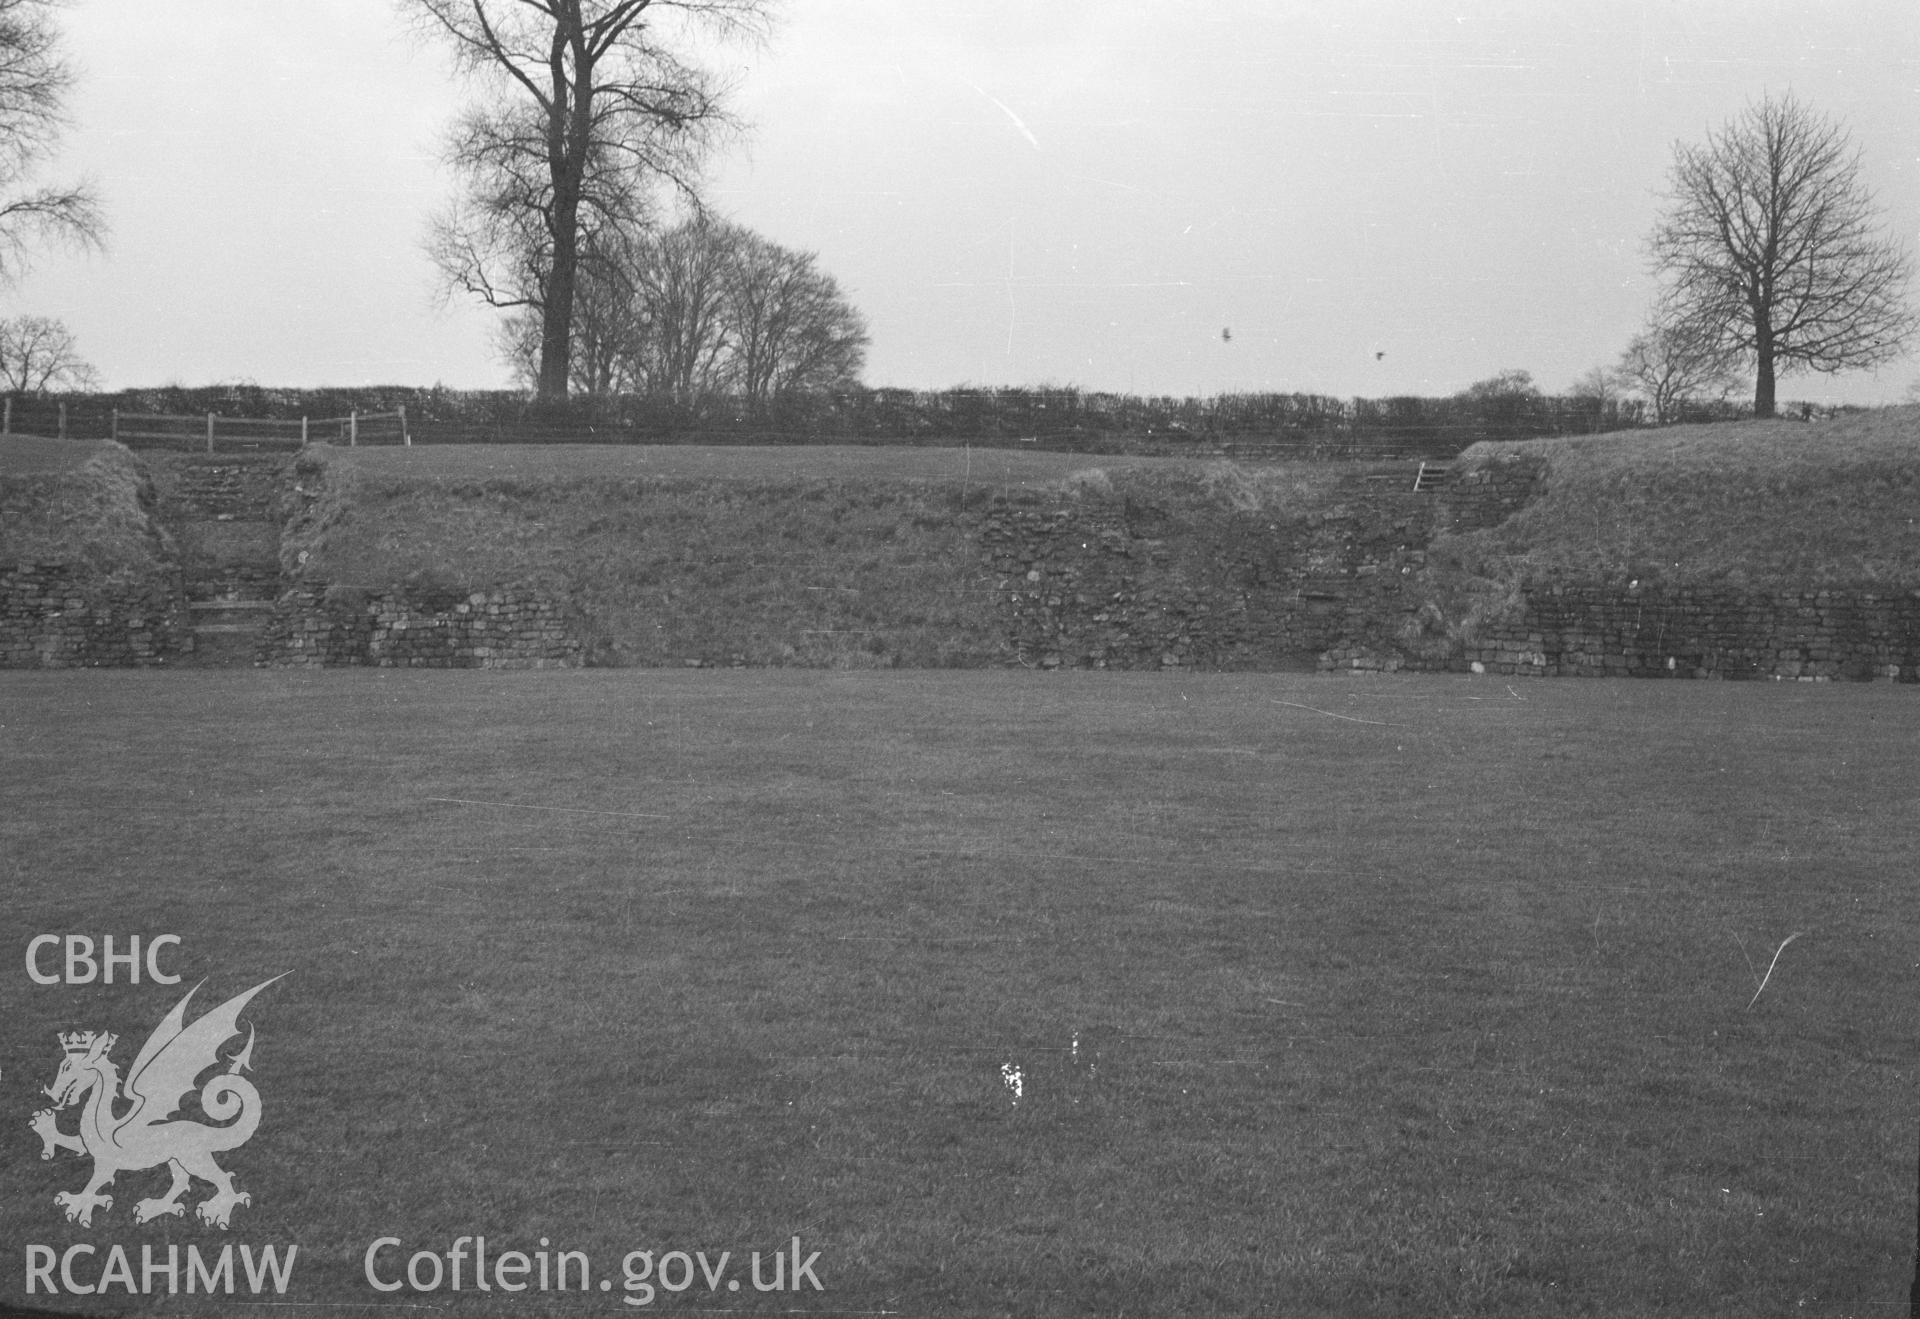 Digital copy of a nitrate negative showing a view of Caerleon legionary fortress taken by Ordnance Survey.